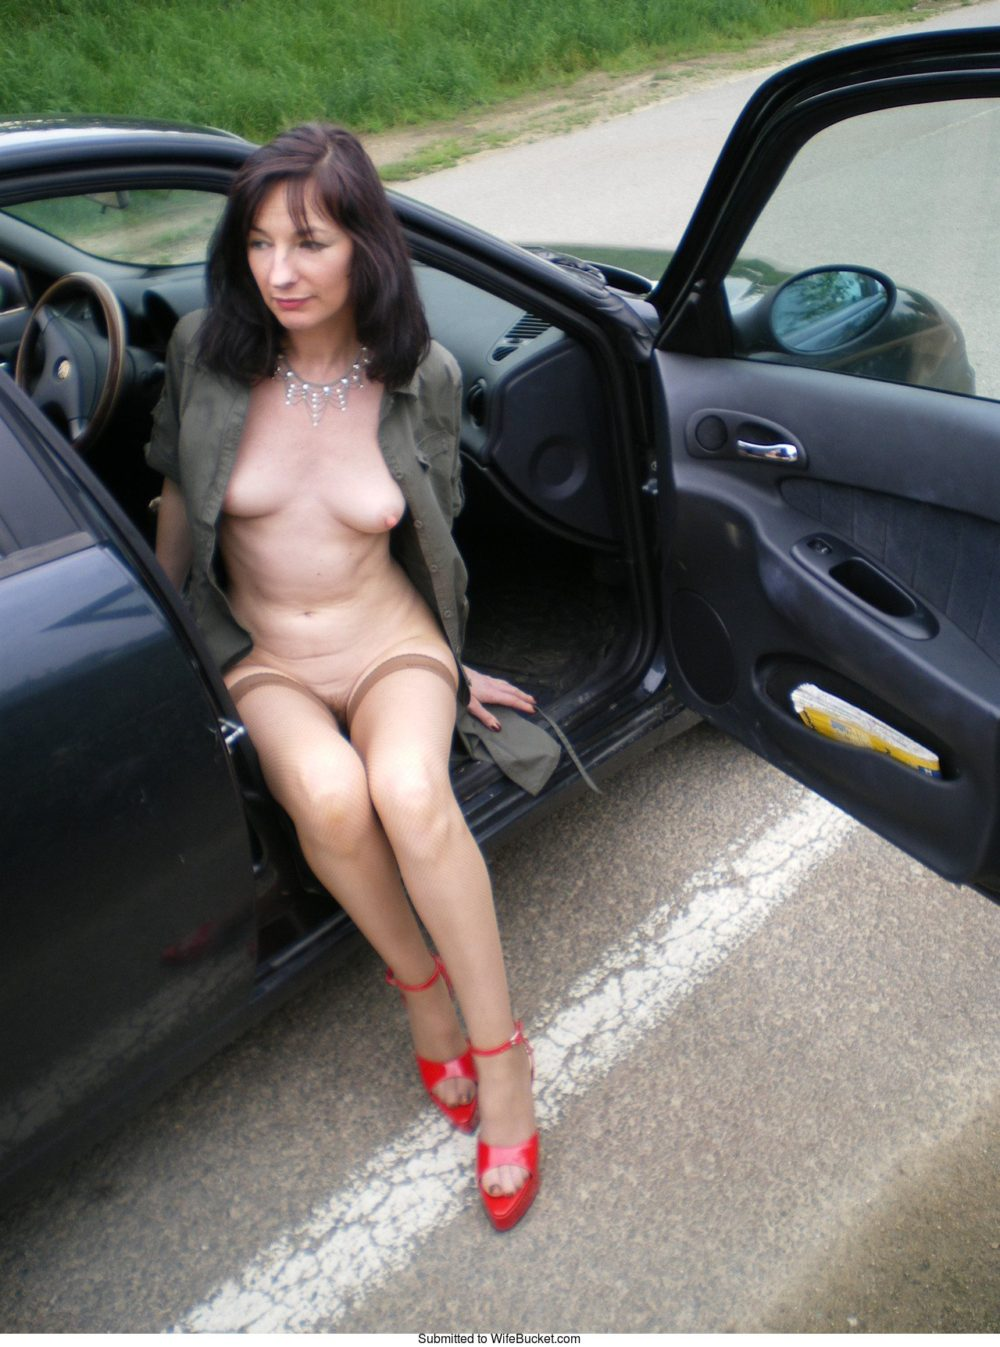 Charming answer Naked milf in cars pics suggest you